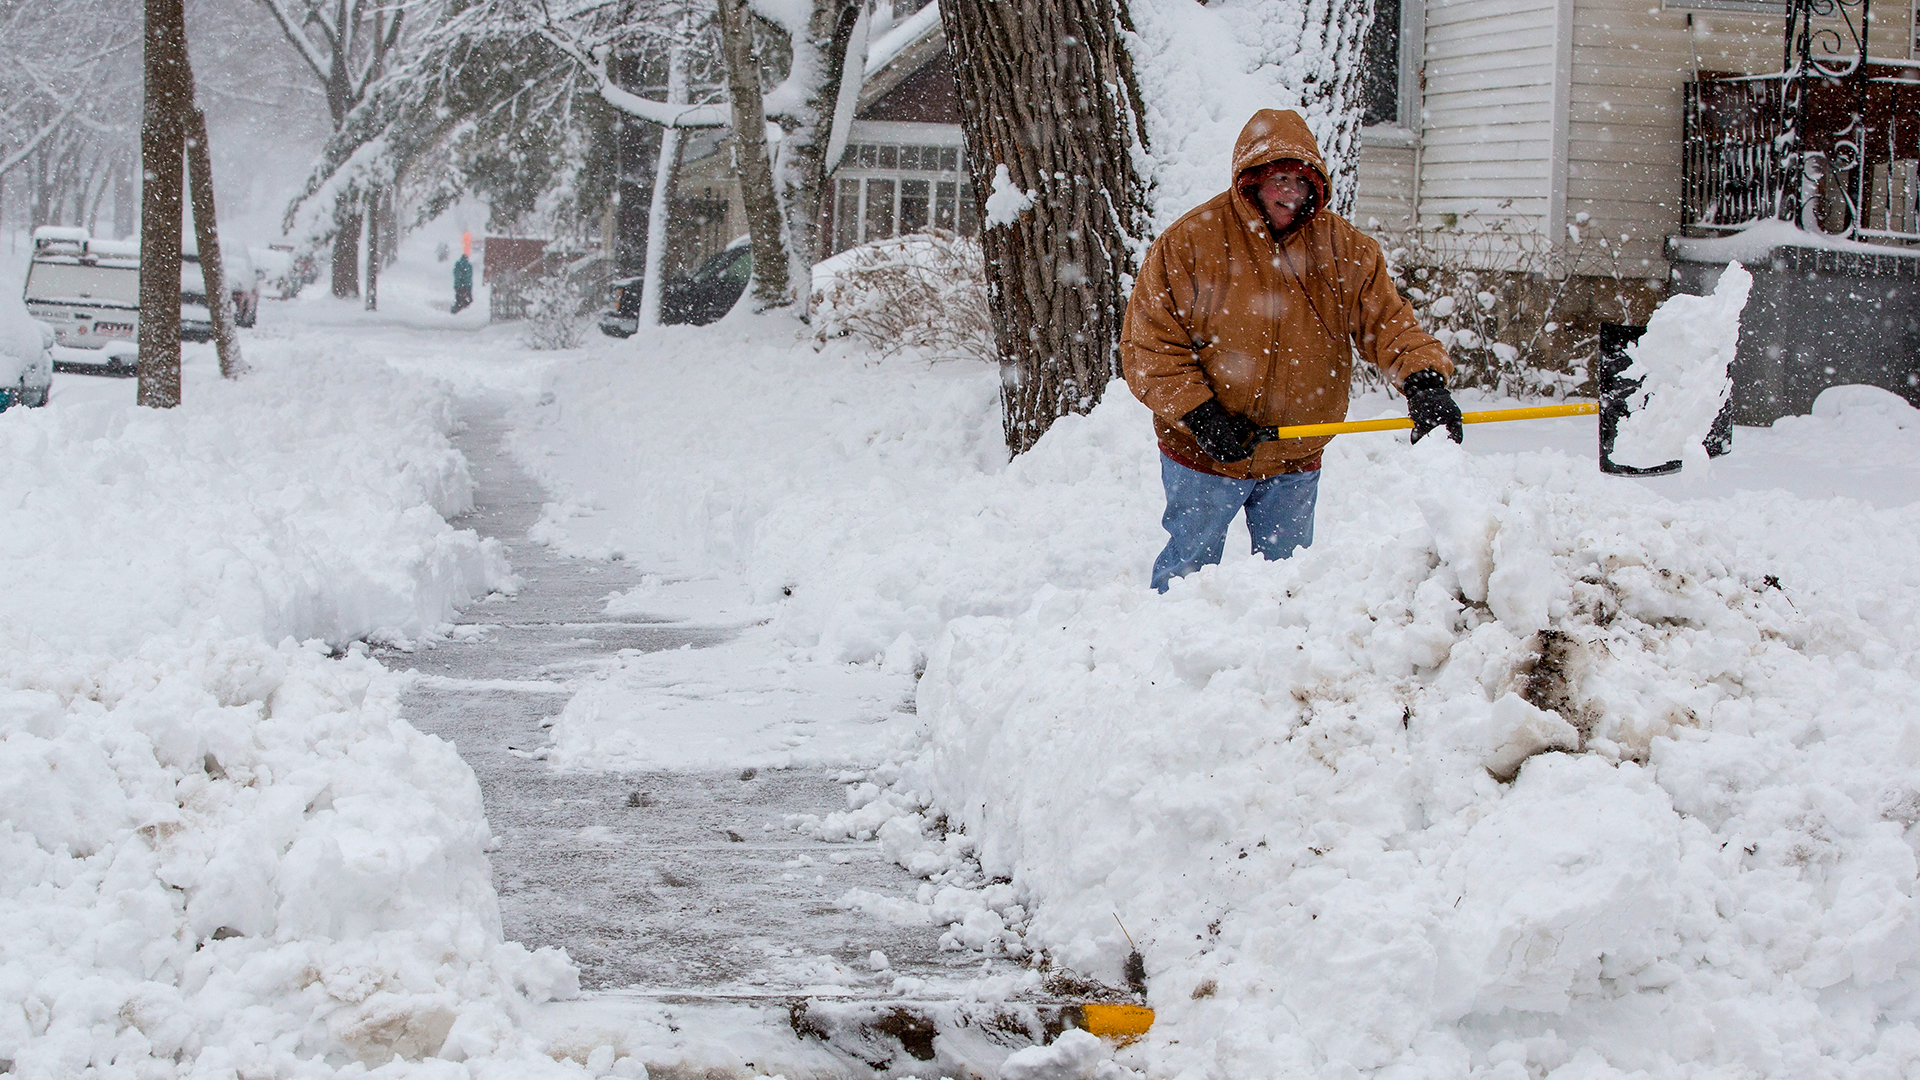 Shoveling snow from snowstorm-159532.jpg46052222